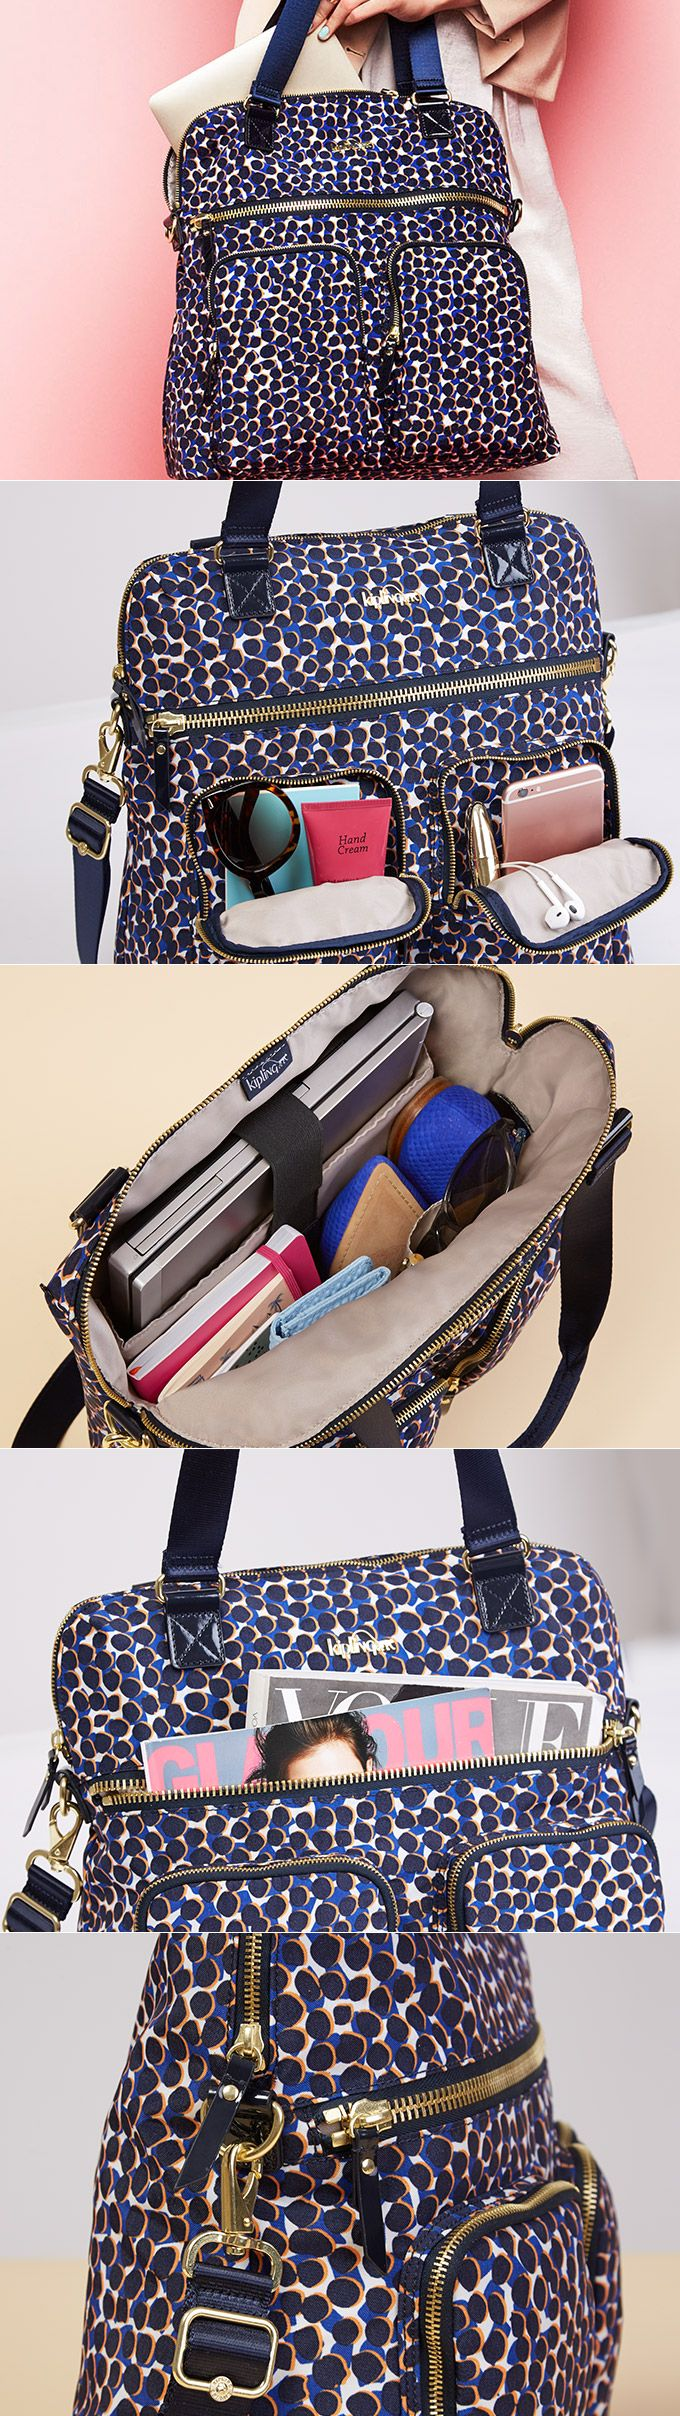 25 best ideas about kipling backpack on pinterest school handbags - Beautiful And Perfect Bag For Traveling Would Make An Amazing Carry On With All Those Storage Compartments Perfect Size Too